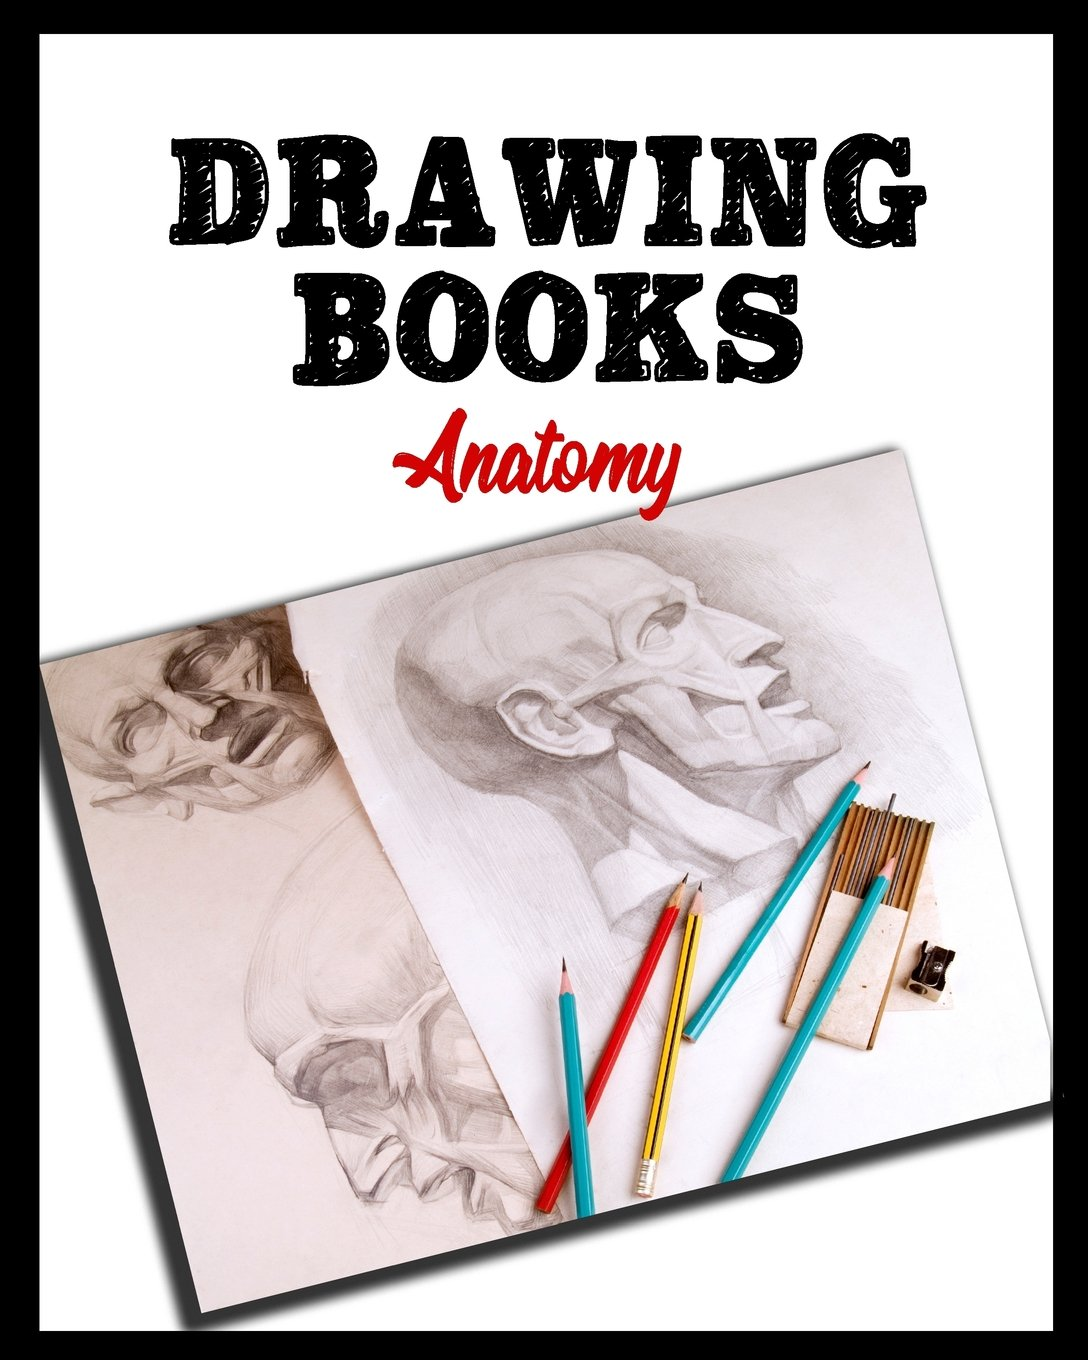 Drawing Books Anatomy: Blank Journals To Write In, Doodle In, Draw In Or Sketch In, 8